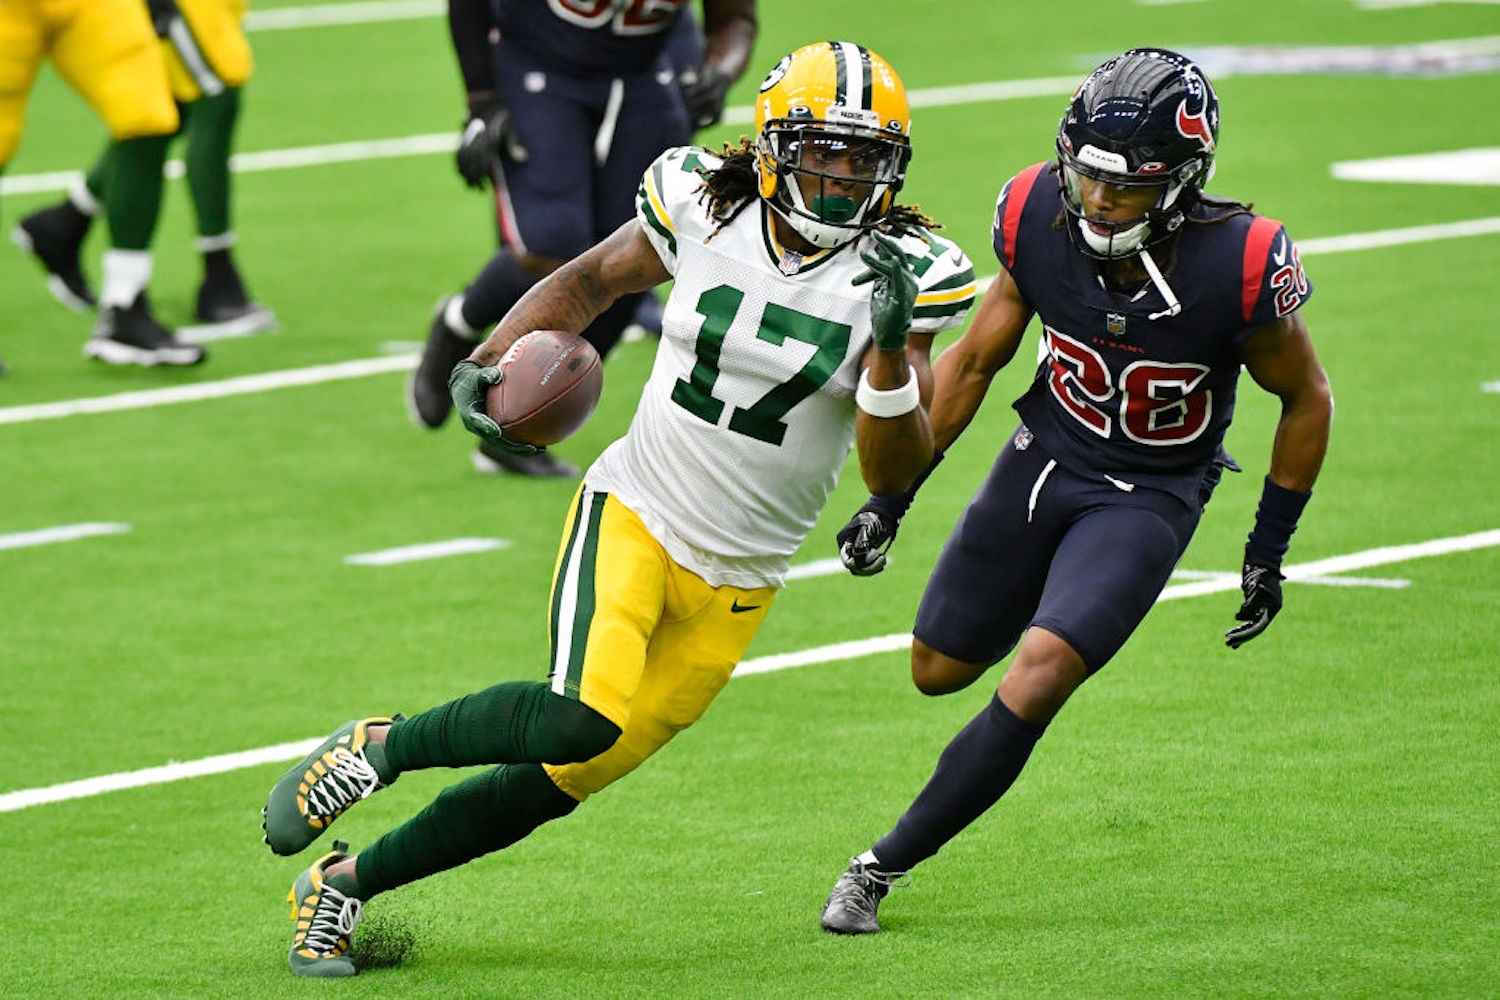 Davante Adams is arguably the best wide receiver in the NFL, and he recently had high praise for an underrated star at the position.